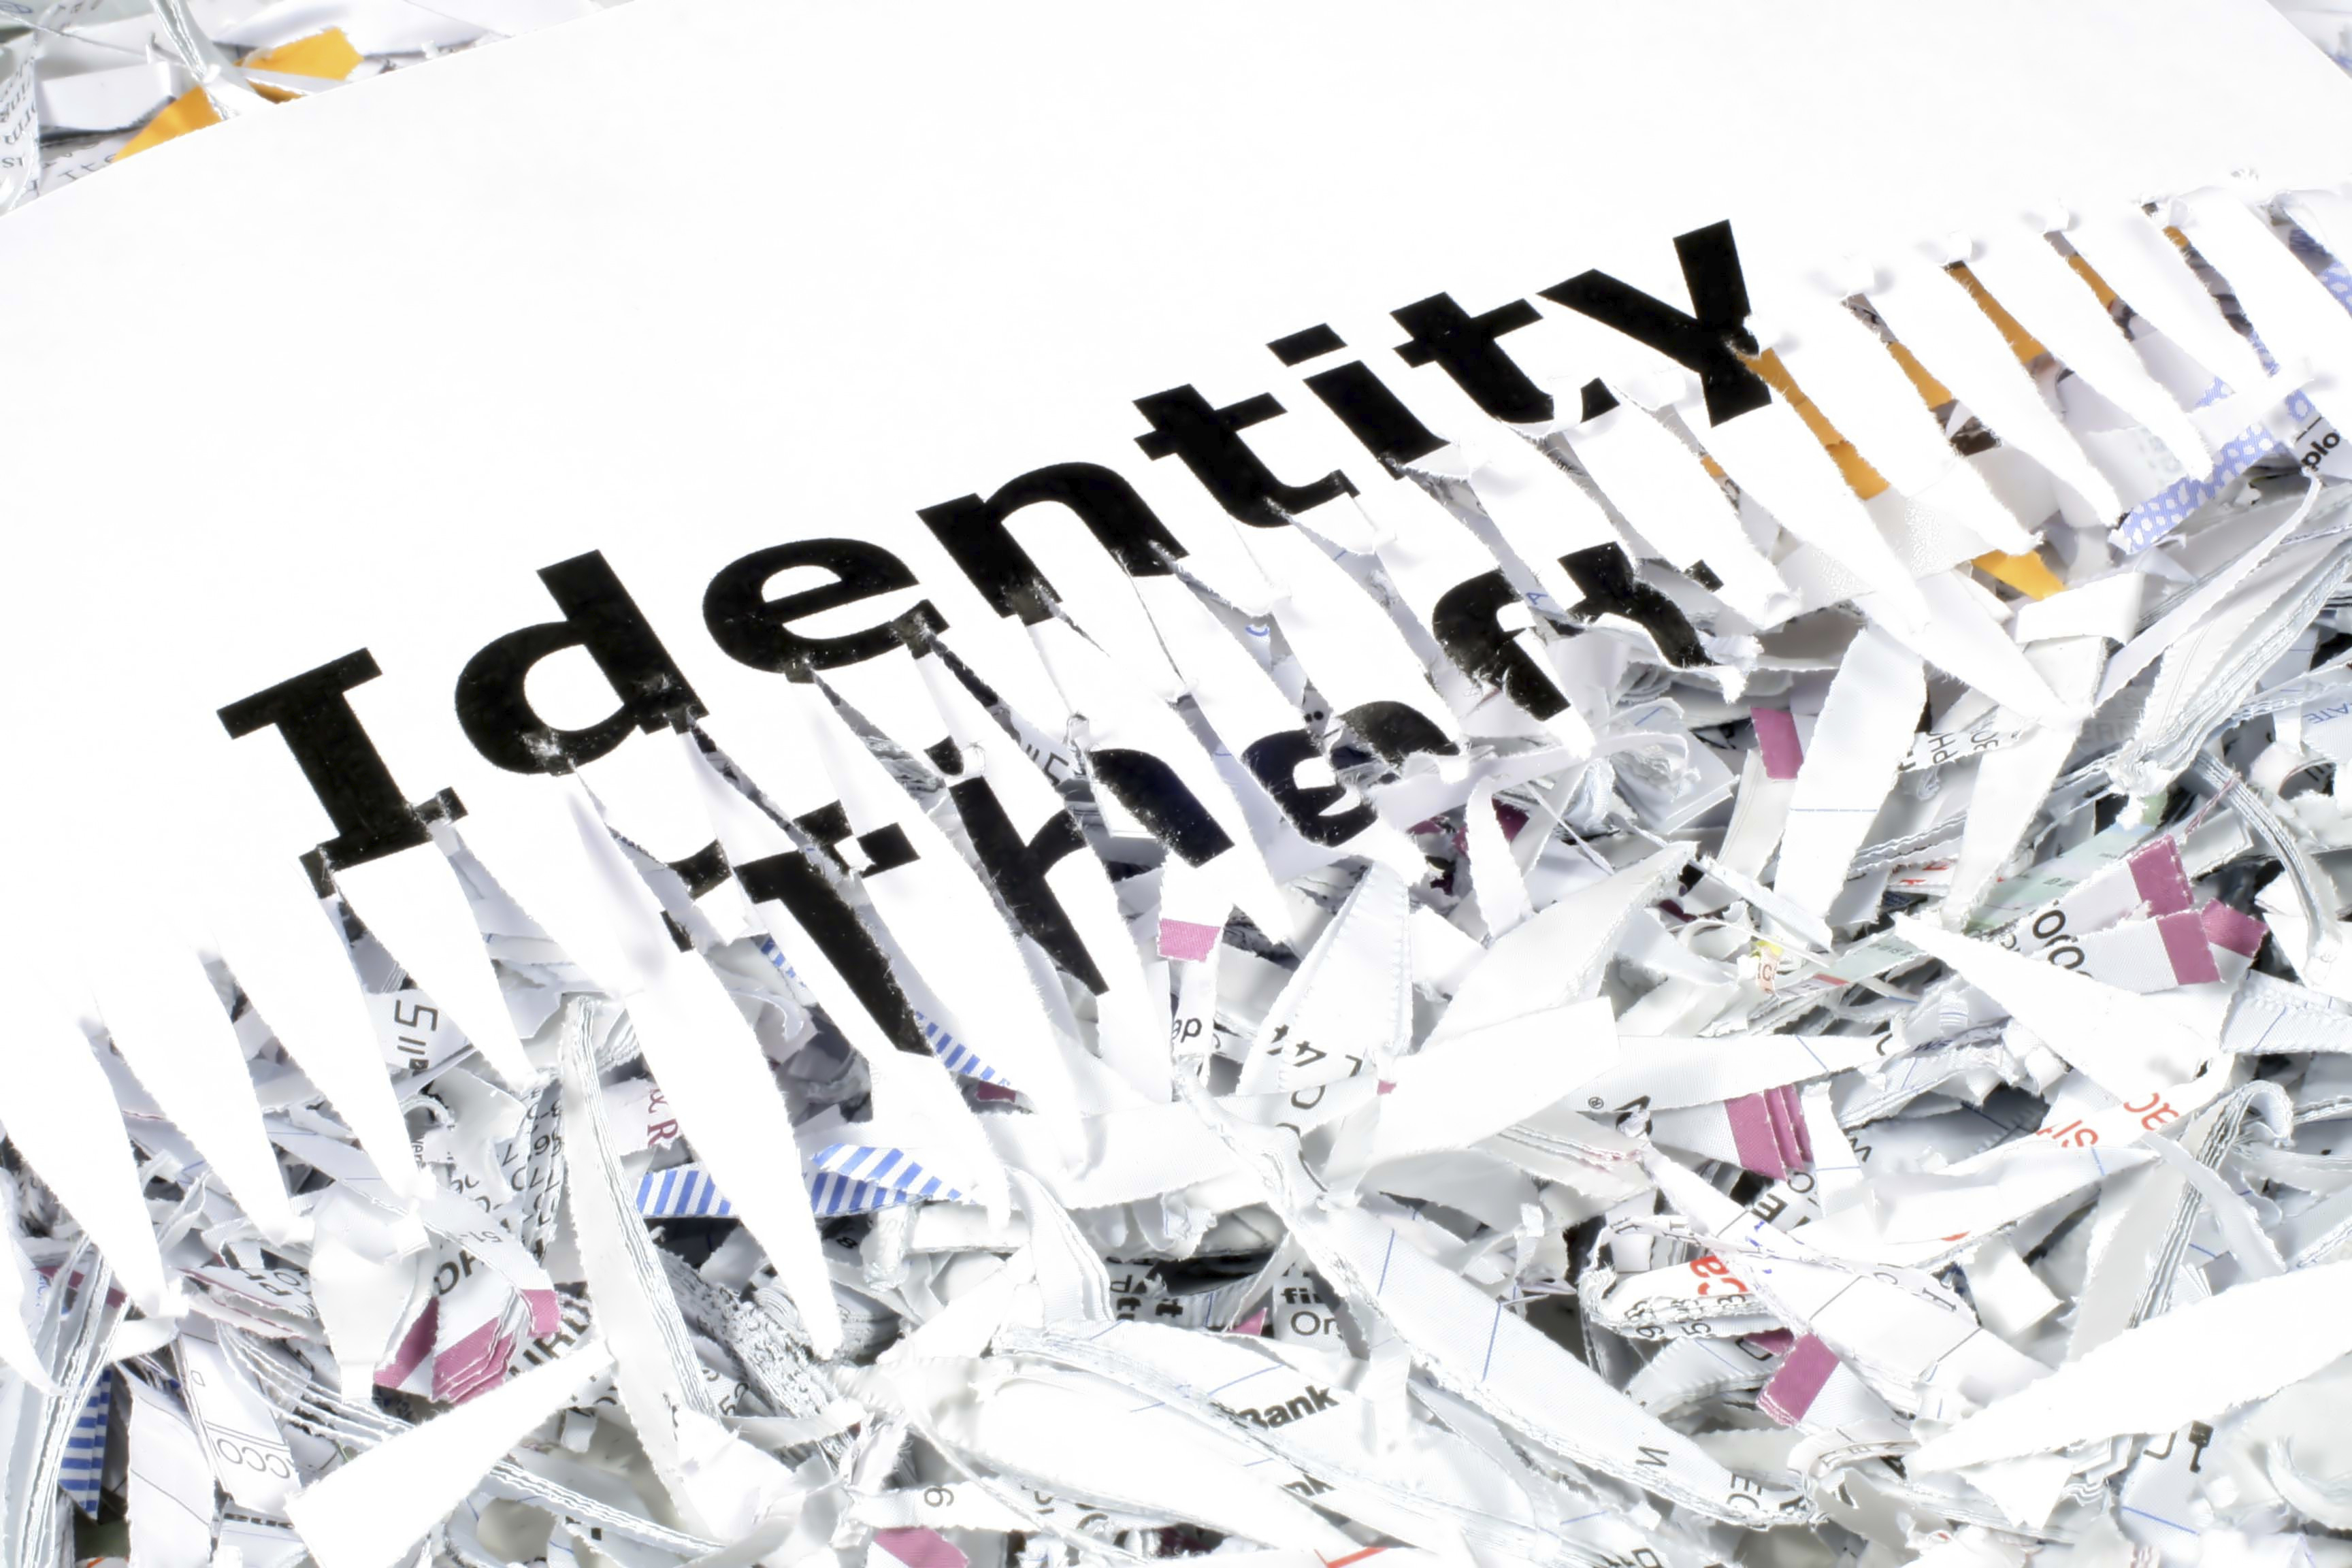 Identity Theft Risks & Shredded Paper